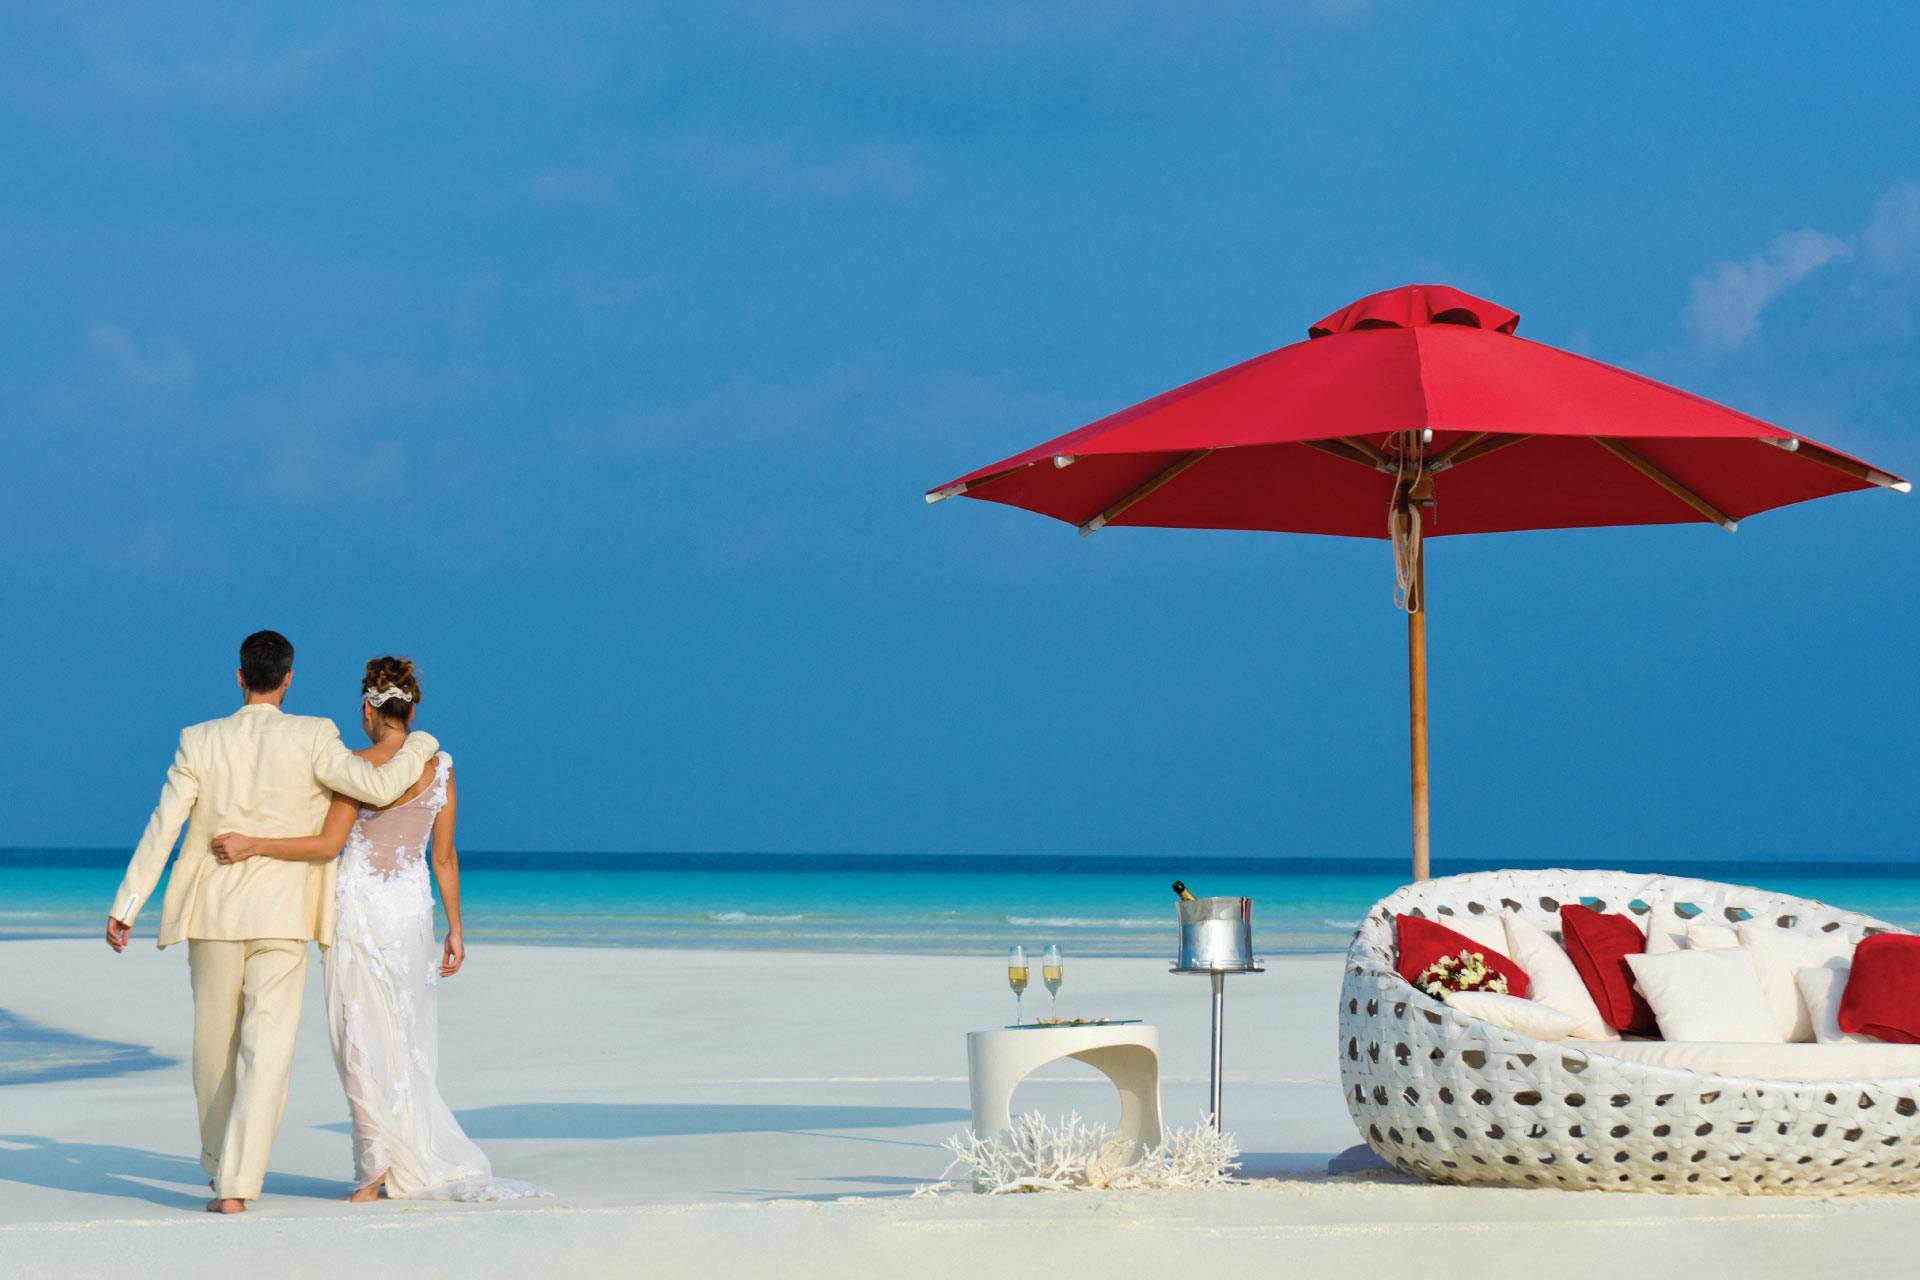 maldives weddings, destination weddings maldives